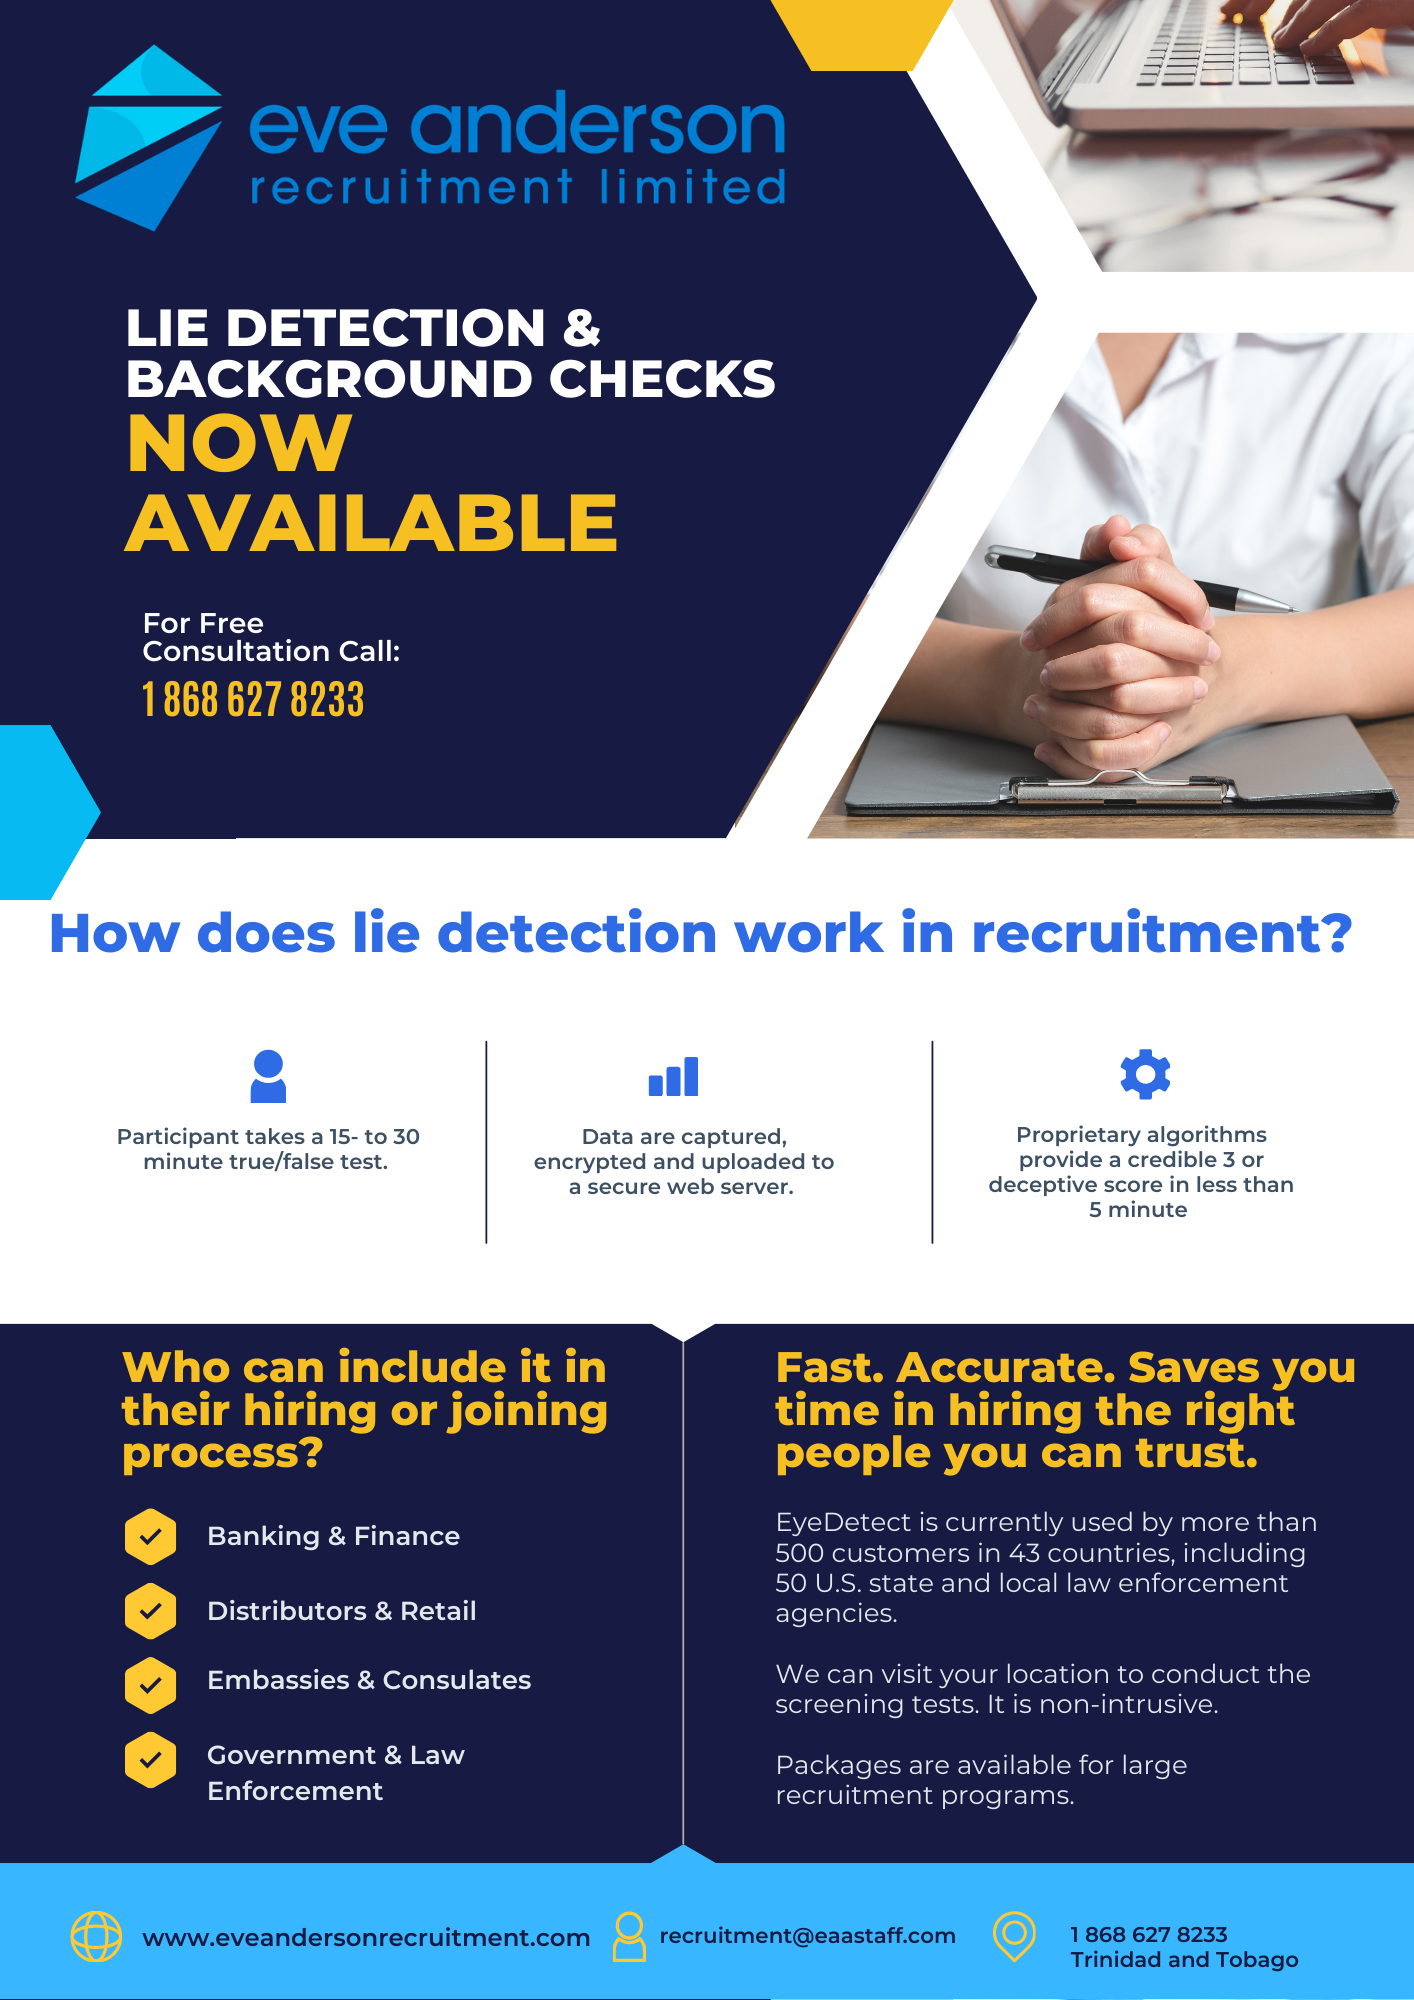 Eve Anderson Recruitment launches Lie Detection non-intrusive screening tests